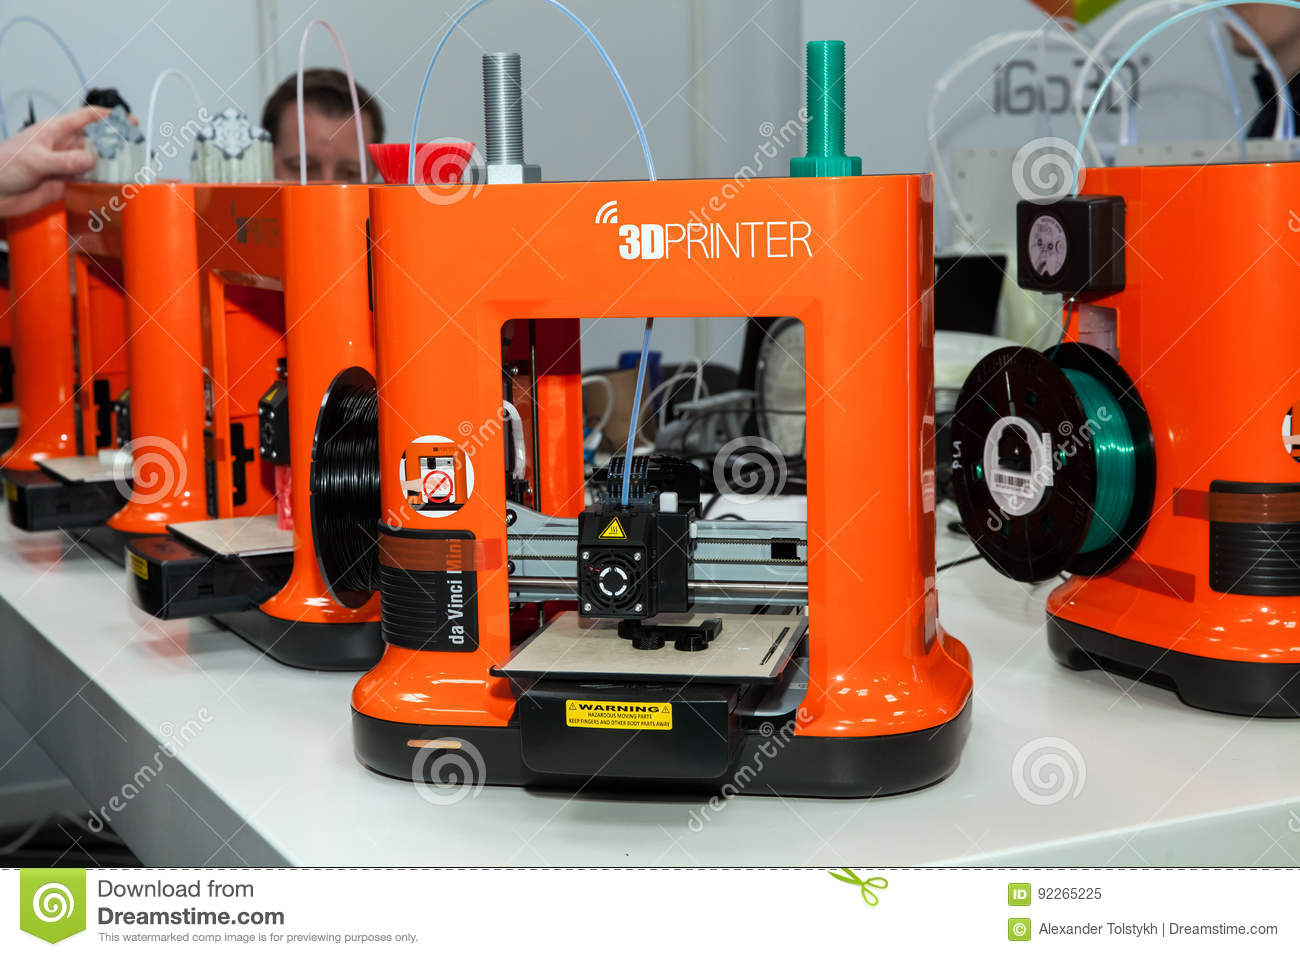 D Printing Exhibition Germany : 3d printer da vinchi mini printing close up process on exhibition